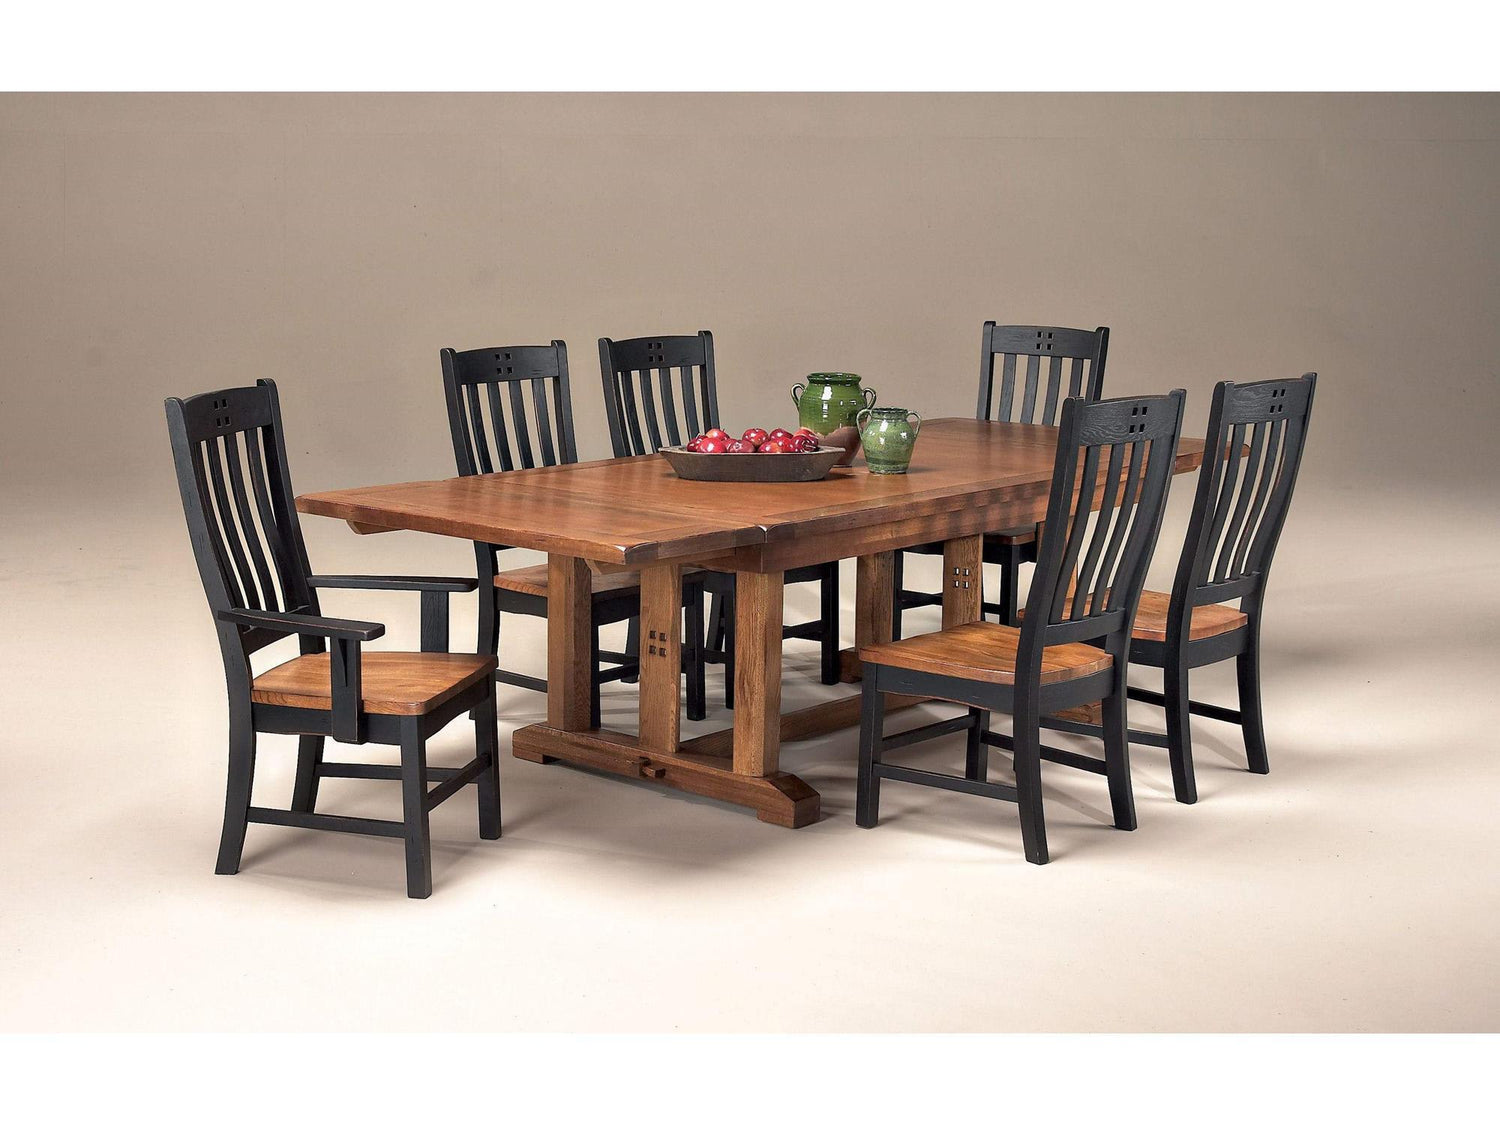 Roanoke Trestle Dining Table Dining furniture in Vancouver, WA